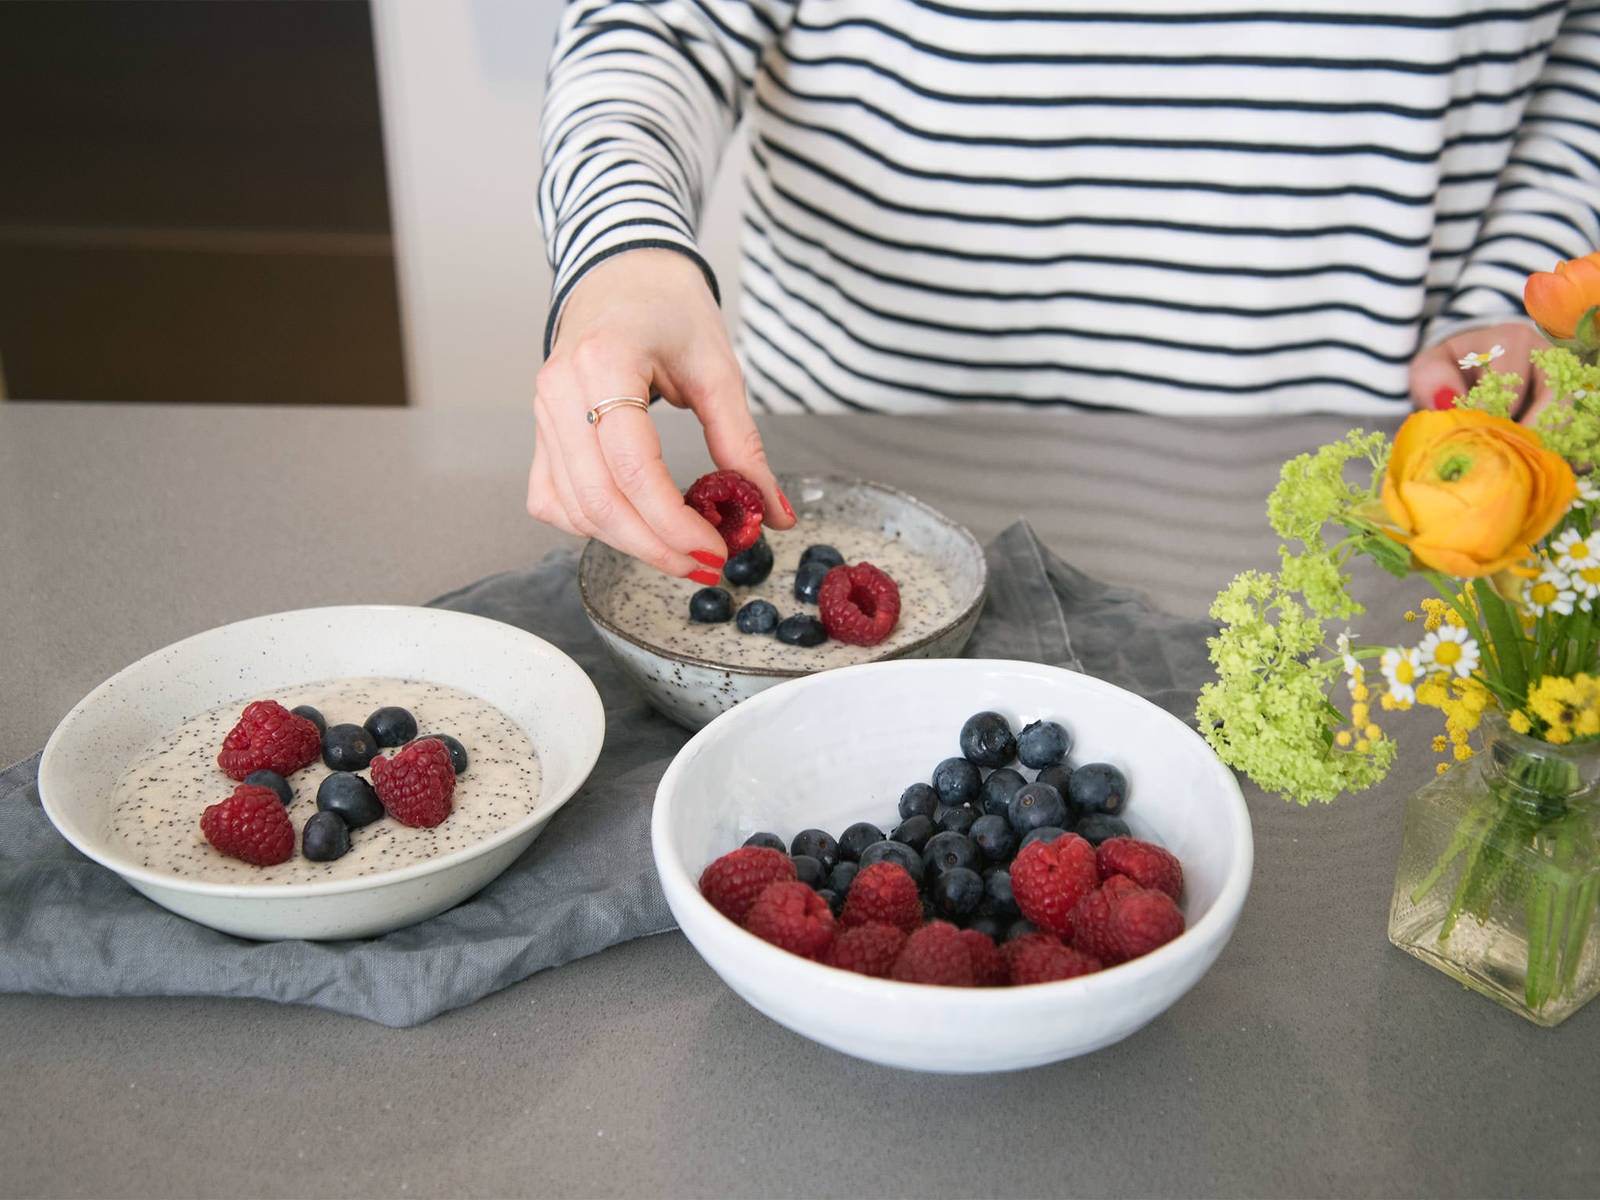 While still hot, transfer porridge to serving bowls and let sit for approx. 5 – 10 min. Garnish with berries and top with more maple syrup, if desired. Enjoy!